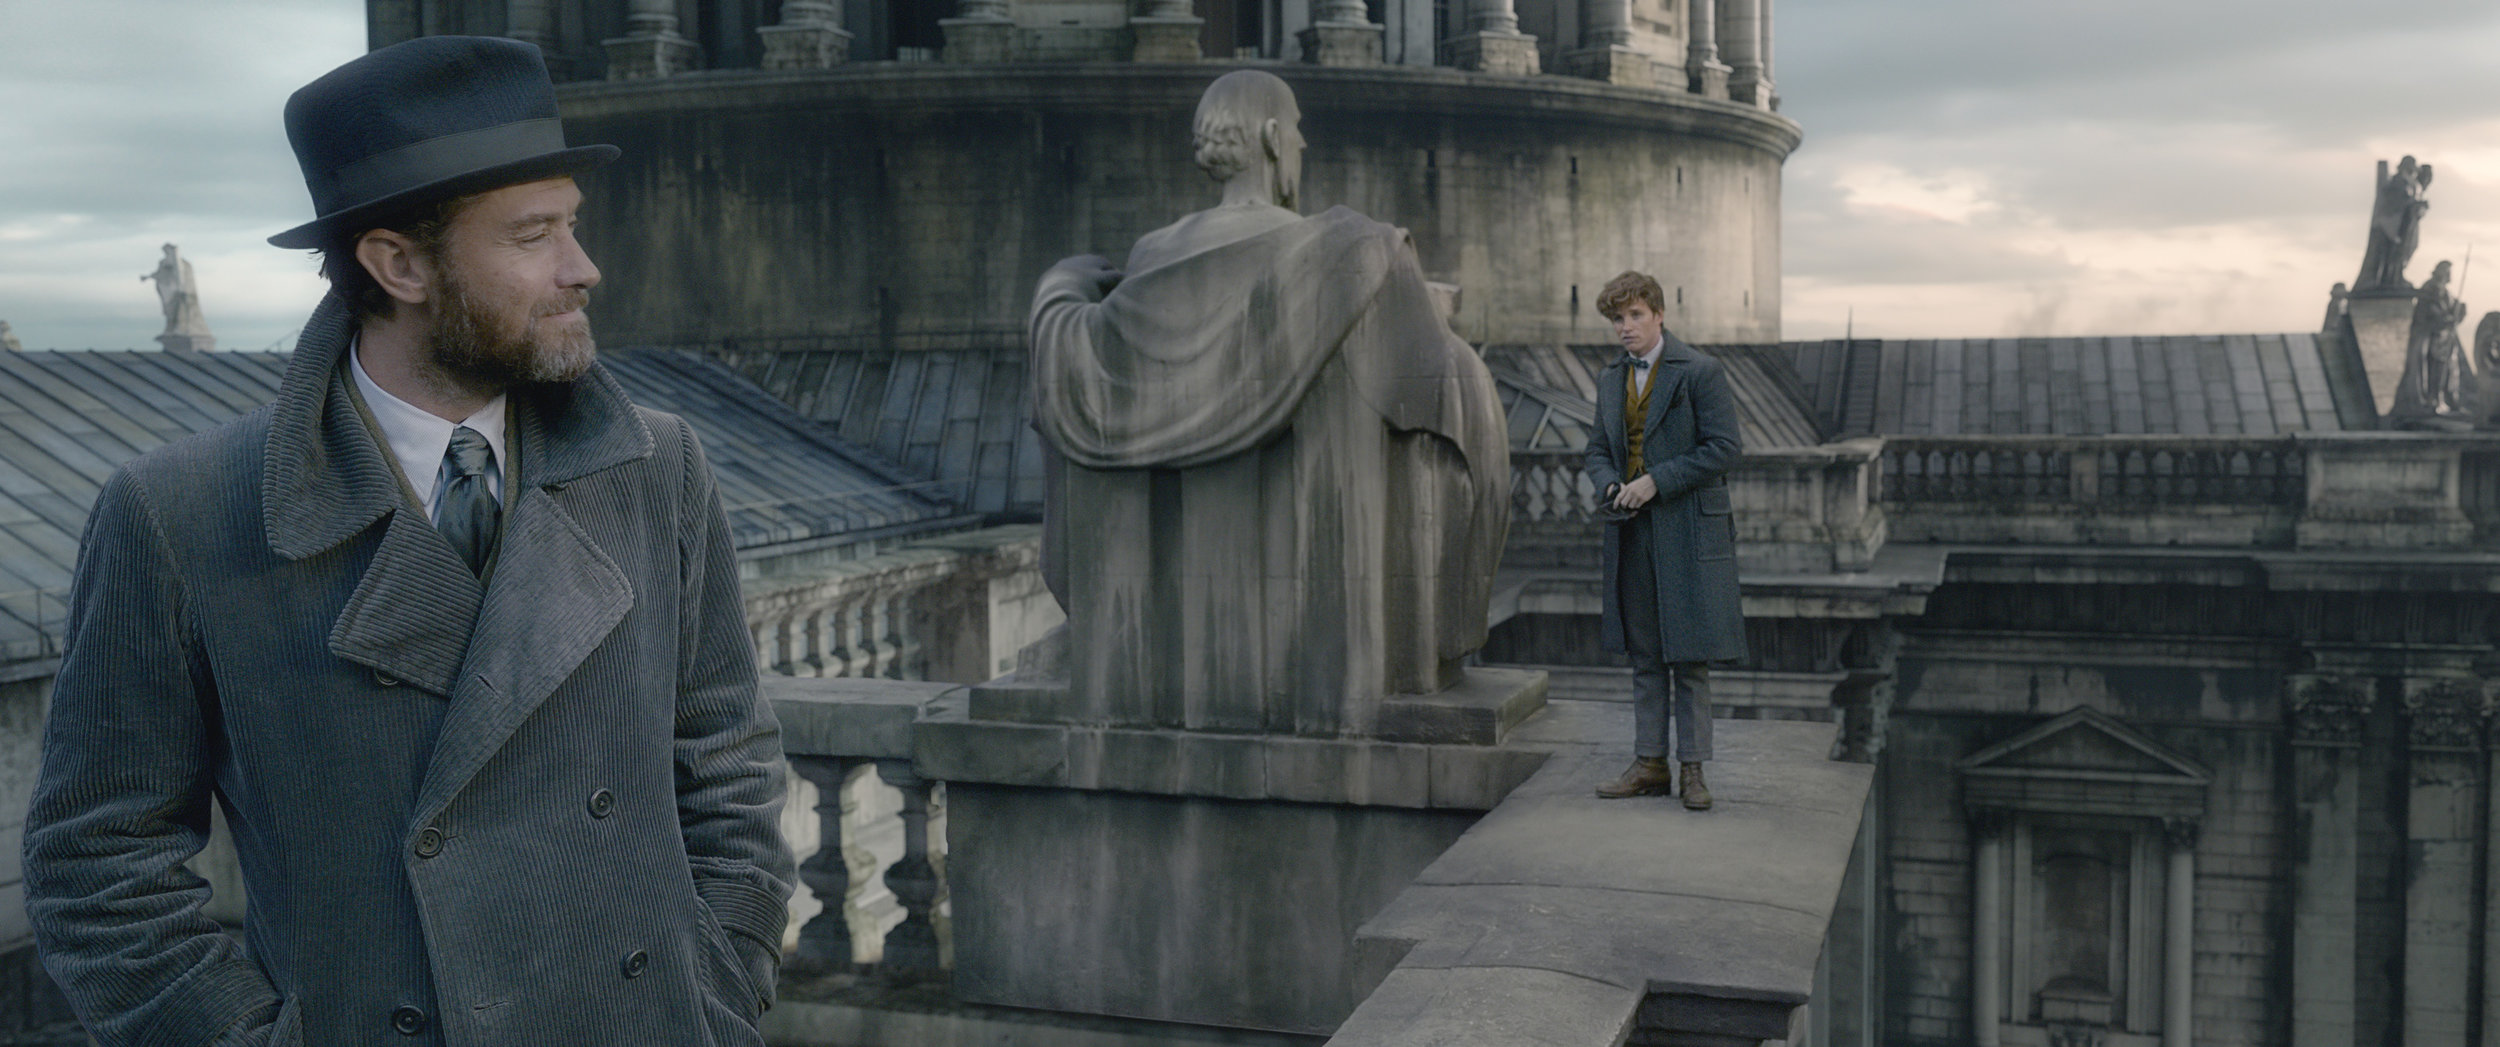 "A younger-than-we're-used-to Albus Dumbledore (Jude Law, left) meets his old student, Newt Scamander (Eddie Redmayne), on a Paris rooftop in ""Fantastic Beasts: The Crimes of Grindelwald,"" the 10th movie set in J.K. Rowling's Wizarding World. (Photo courtesy Warner Bros. Pictures)"